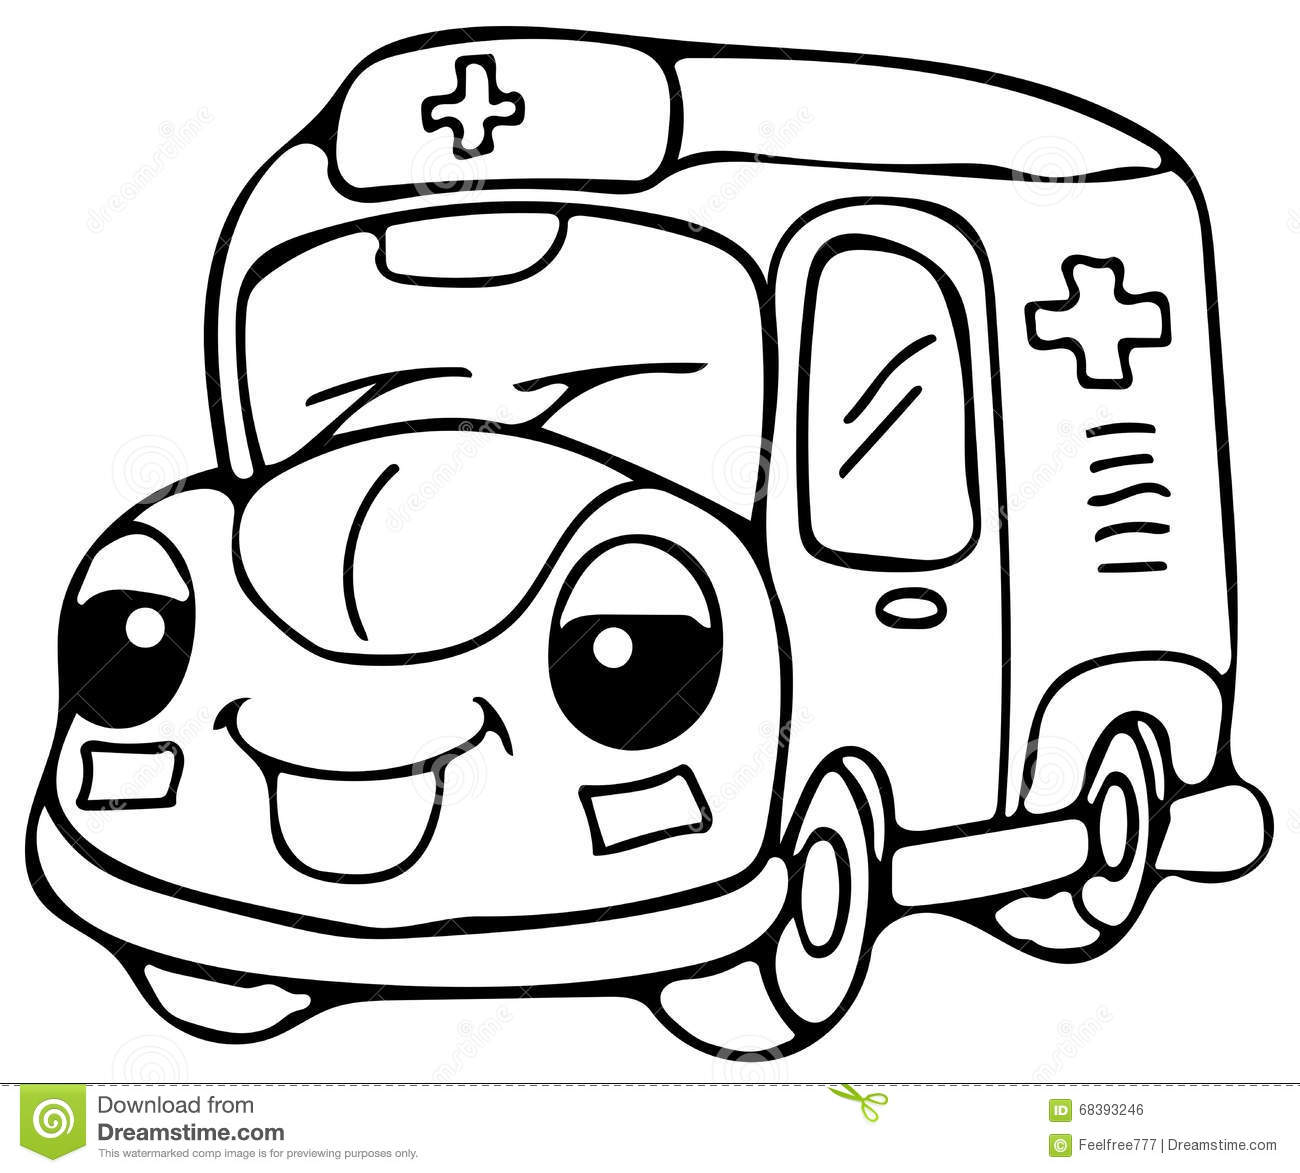 Cute Car Coloring Page Illustration For Kids - Coloring ...